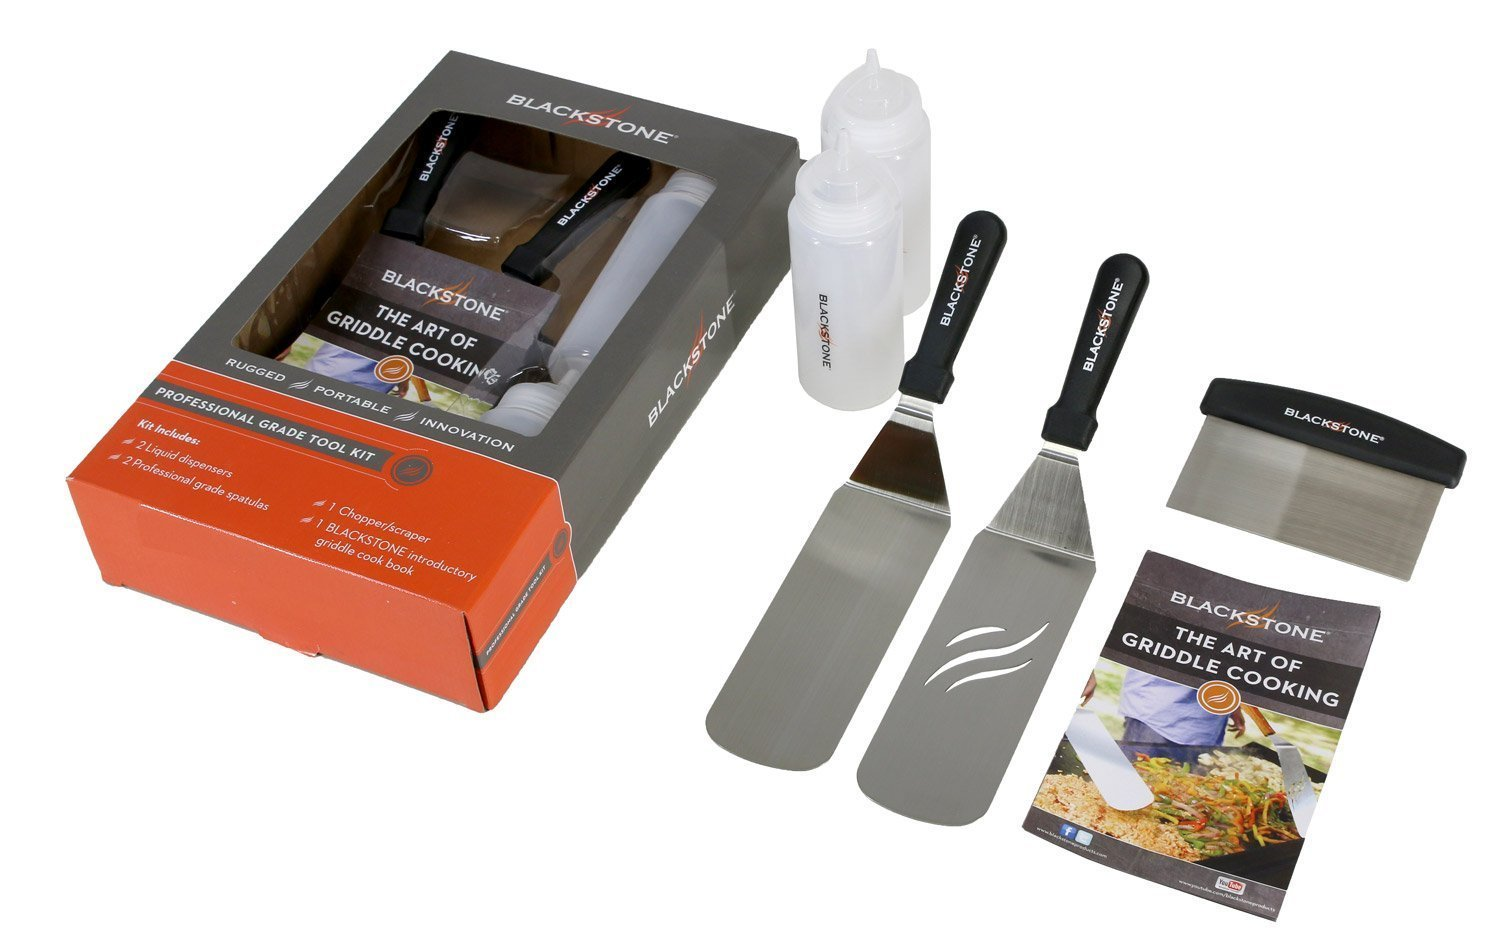 Blackstone 1542 5 Piece Professional Grade Grill Griddle BBQ Tool Kit with FREE Recipe Book - 2 Spatulas, 1 Chopper Scrapper and 2 Bottles - Great for Flat Top Cooking, Camping and Tailgating